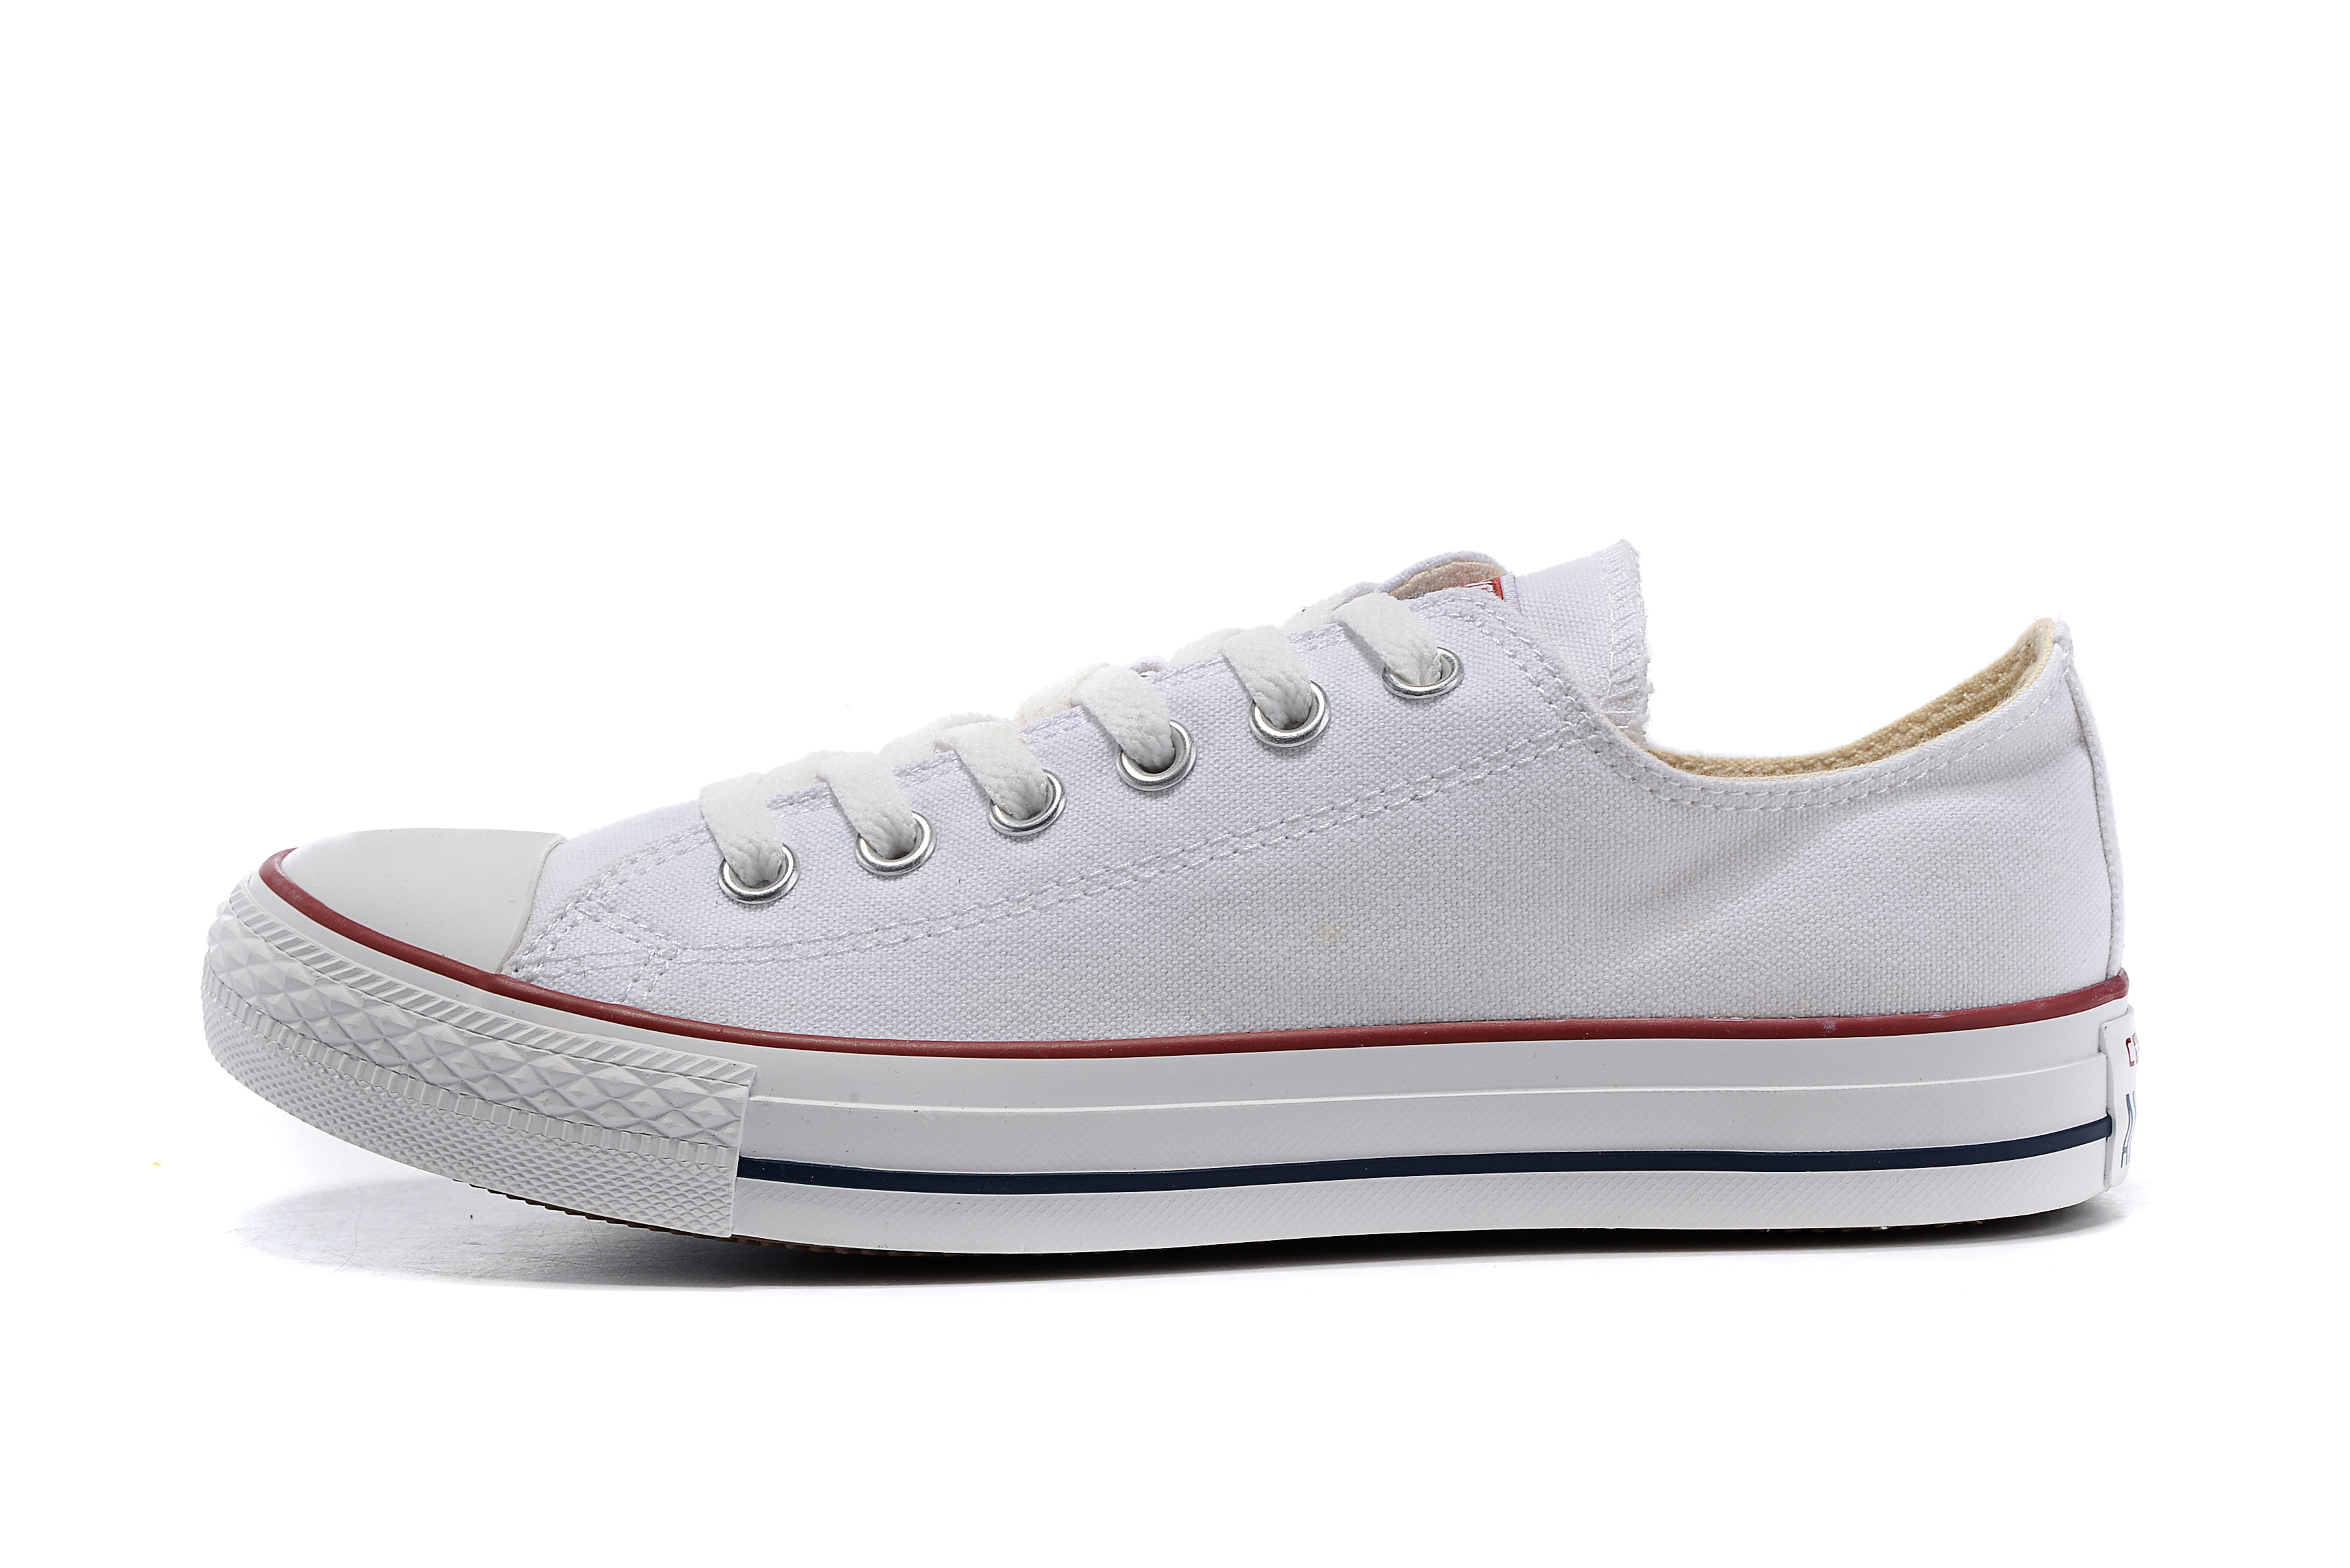 Converse All Star Classic Men's And Women's Sneakers For Men Women Canvas Shoes All White High Low Skateboarding Shoes